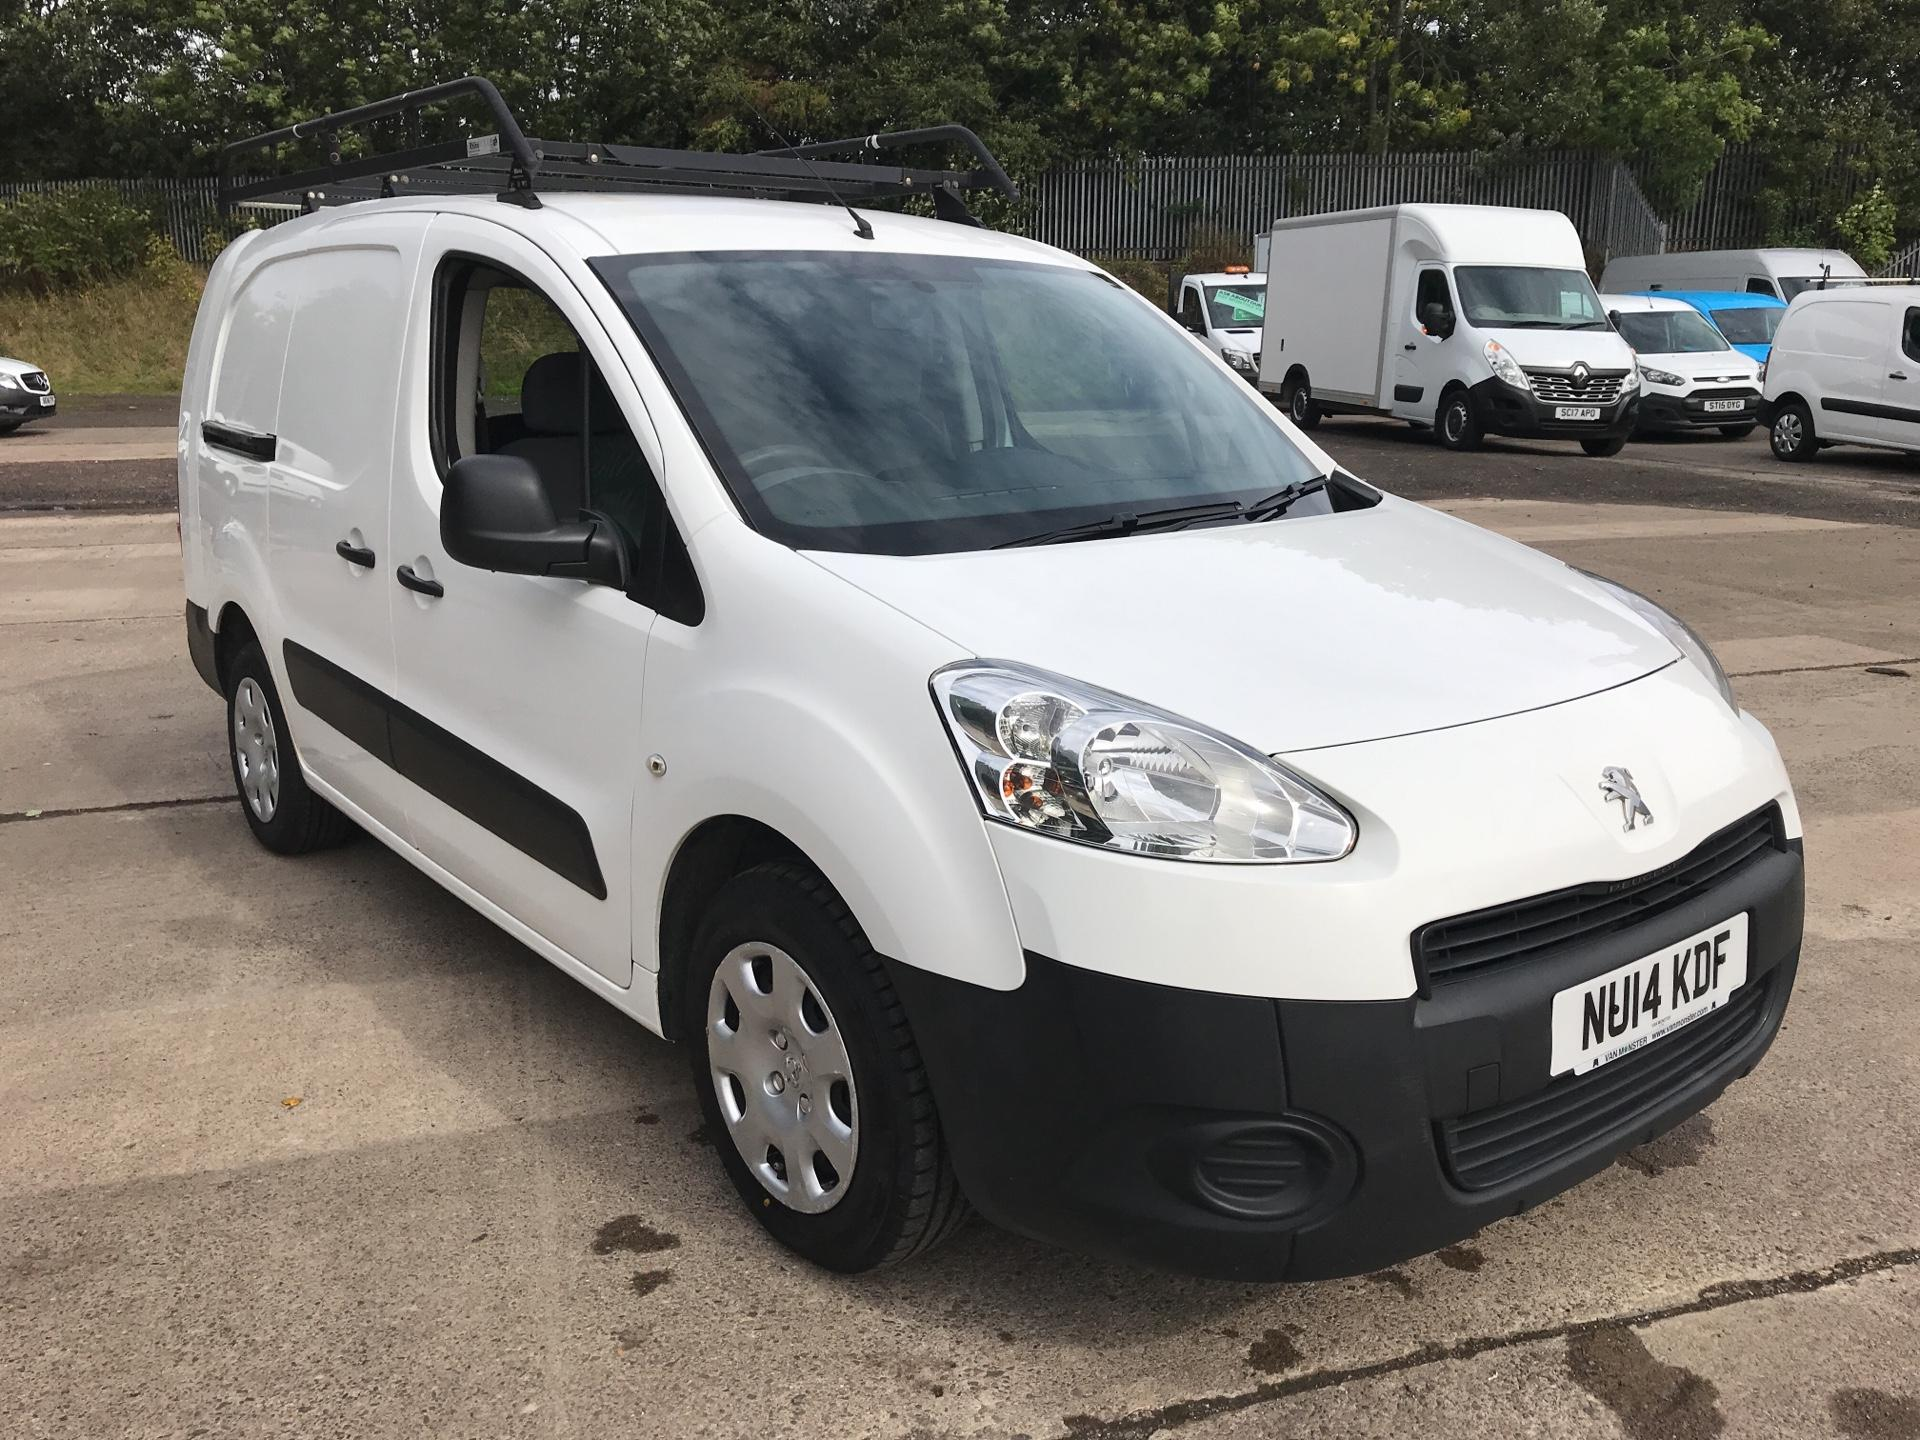 2014 Peugeot Partner L2 716 S 1.6 HDI 92PS CREW VAN EURO 5 (VALUE RANGE VEHICLE - CONDITION REFLECTED IN PRICE) (NU14KDF)